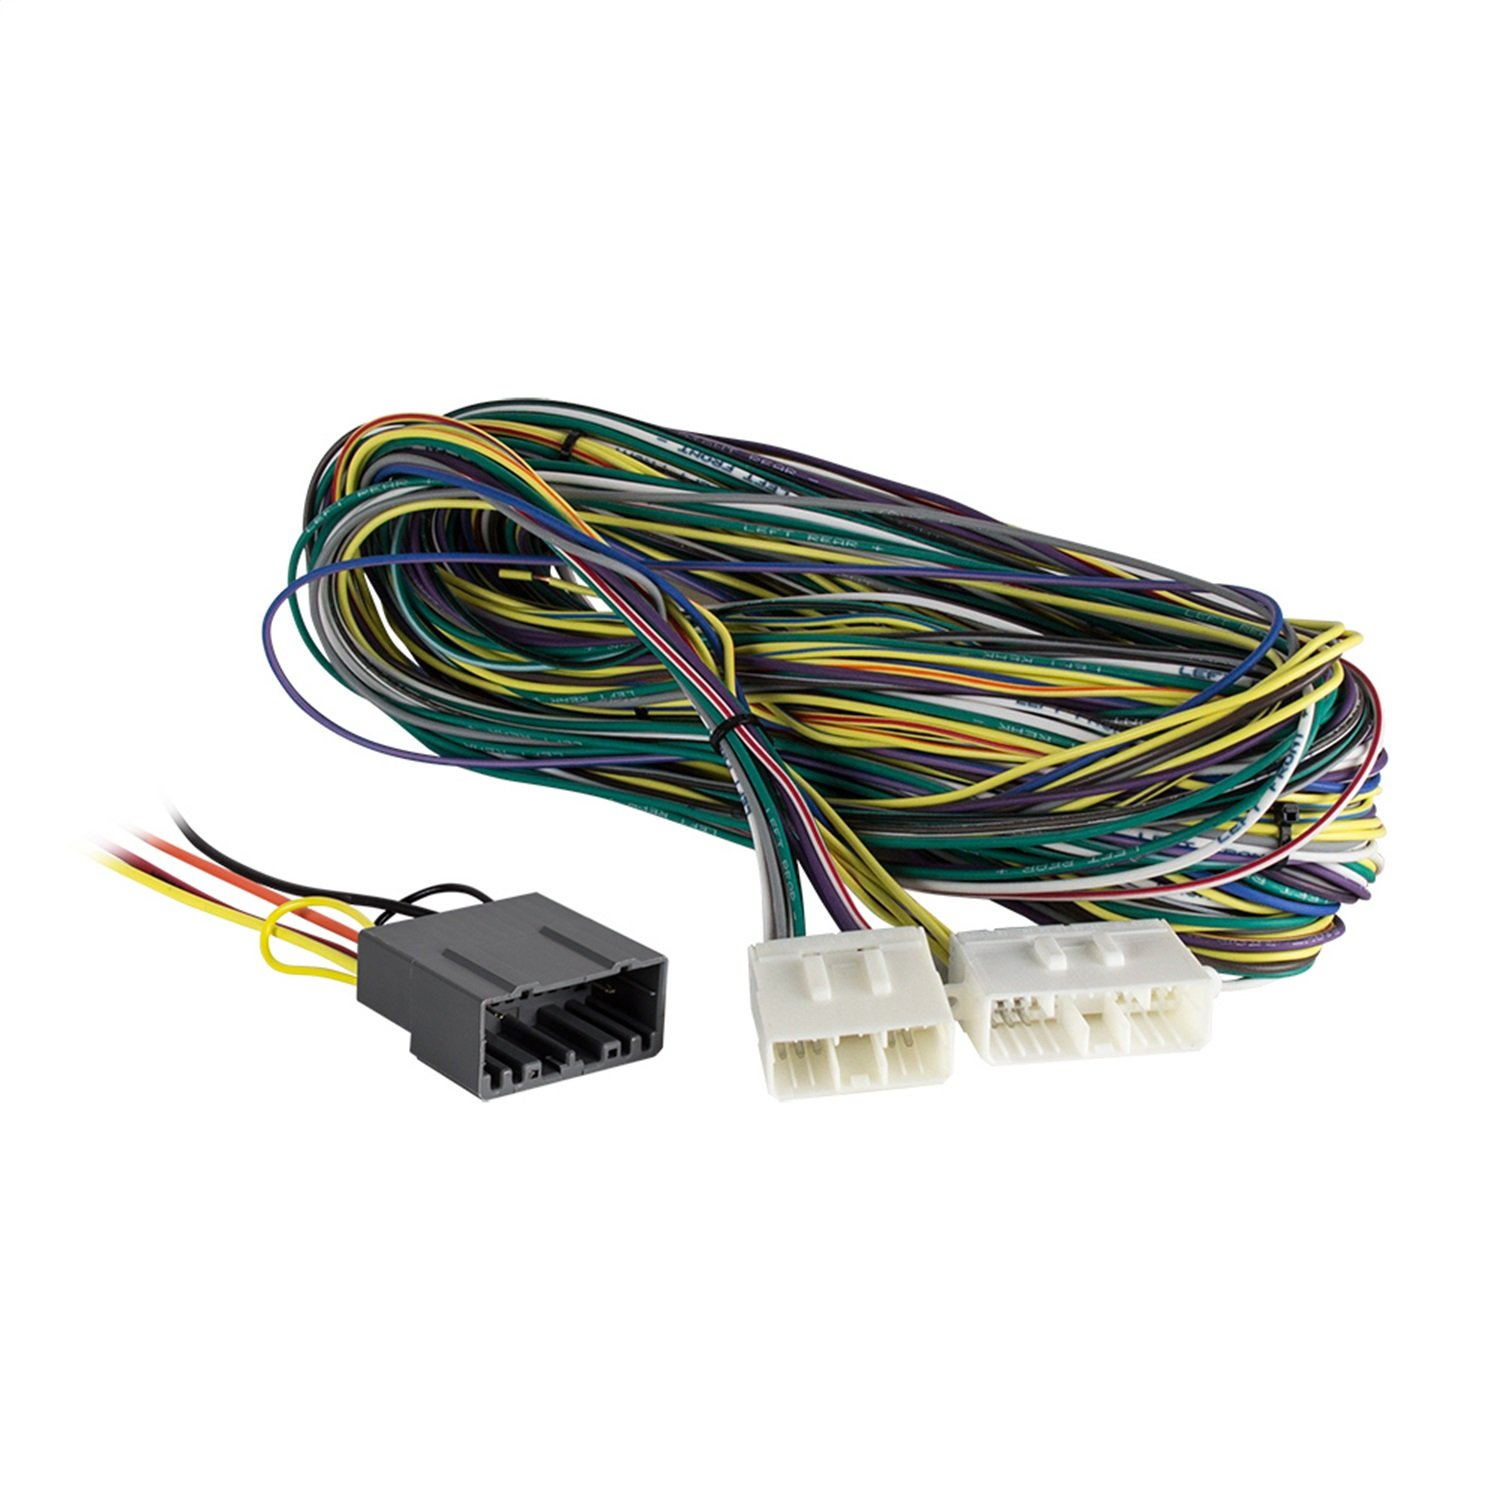 Amazon.com: Metra 70-6510 Wiring Harness for Select 2002-2004 Dodge Ram  with Infiniti System: Car Electronics